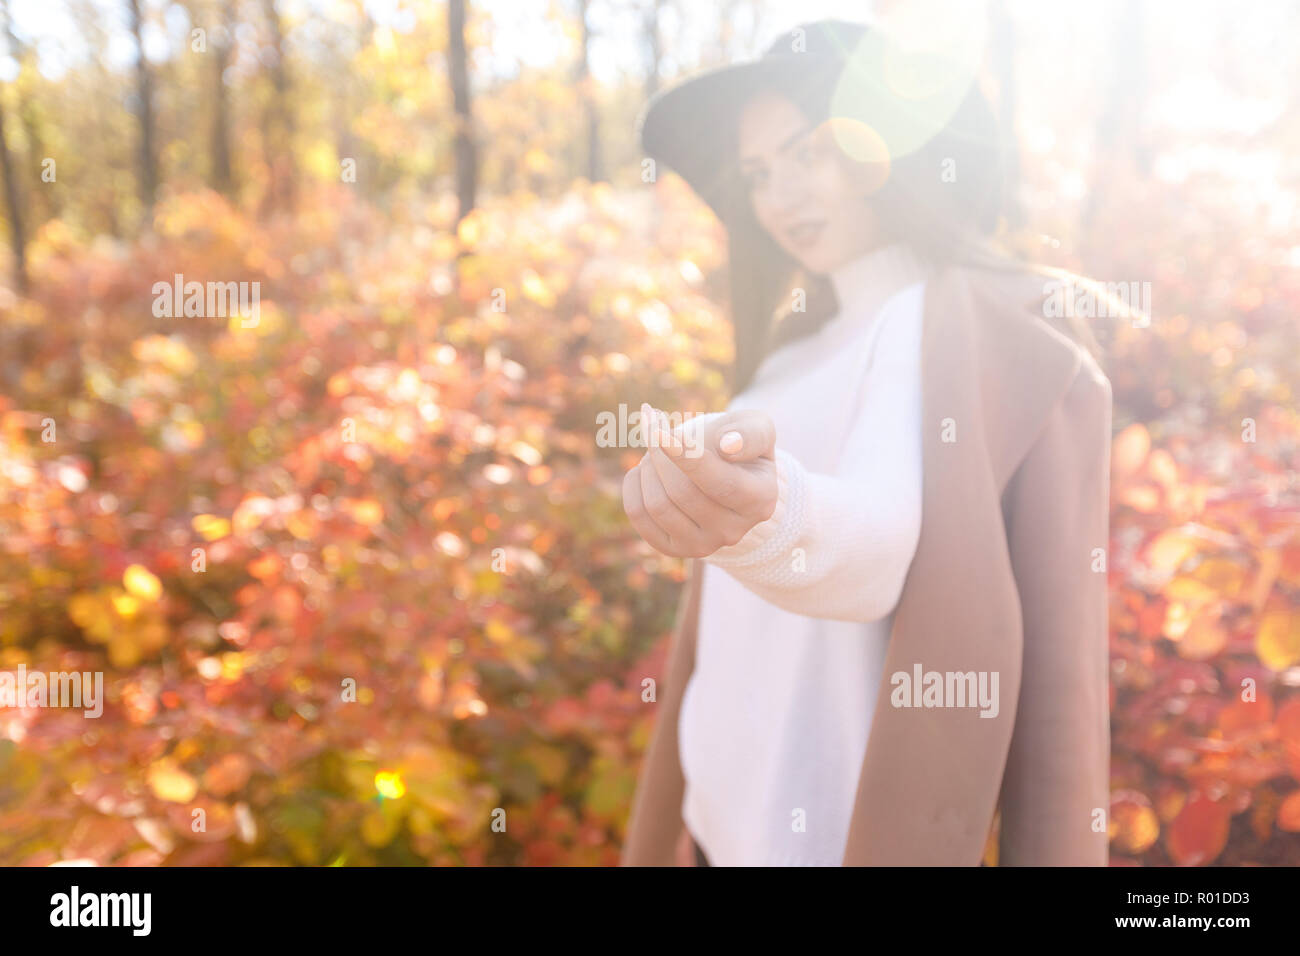 woman smiling and inviting to follow her in autumn park. - Stock Image